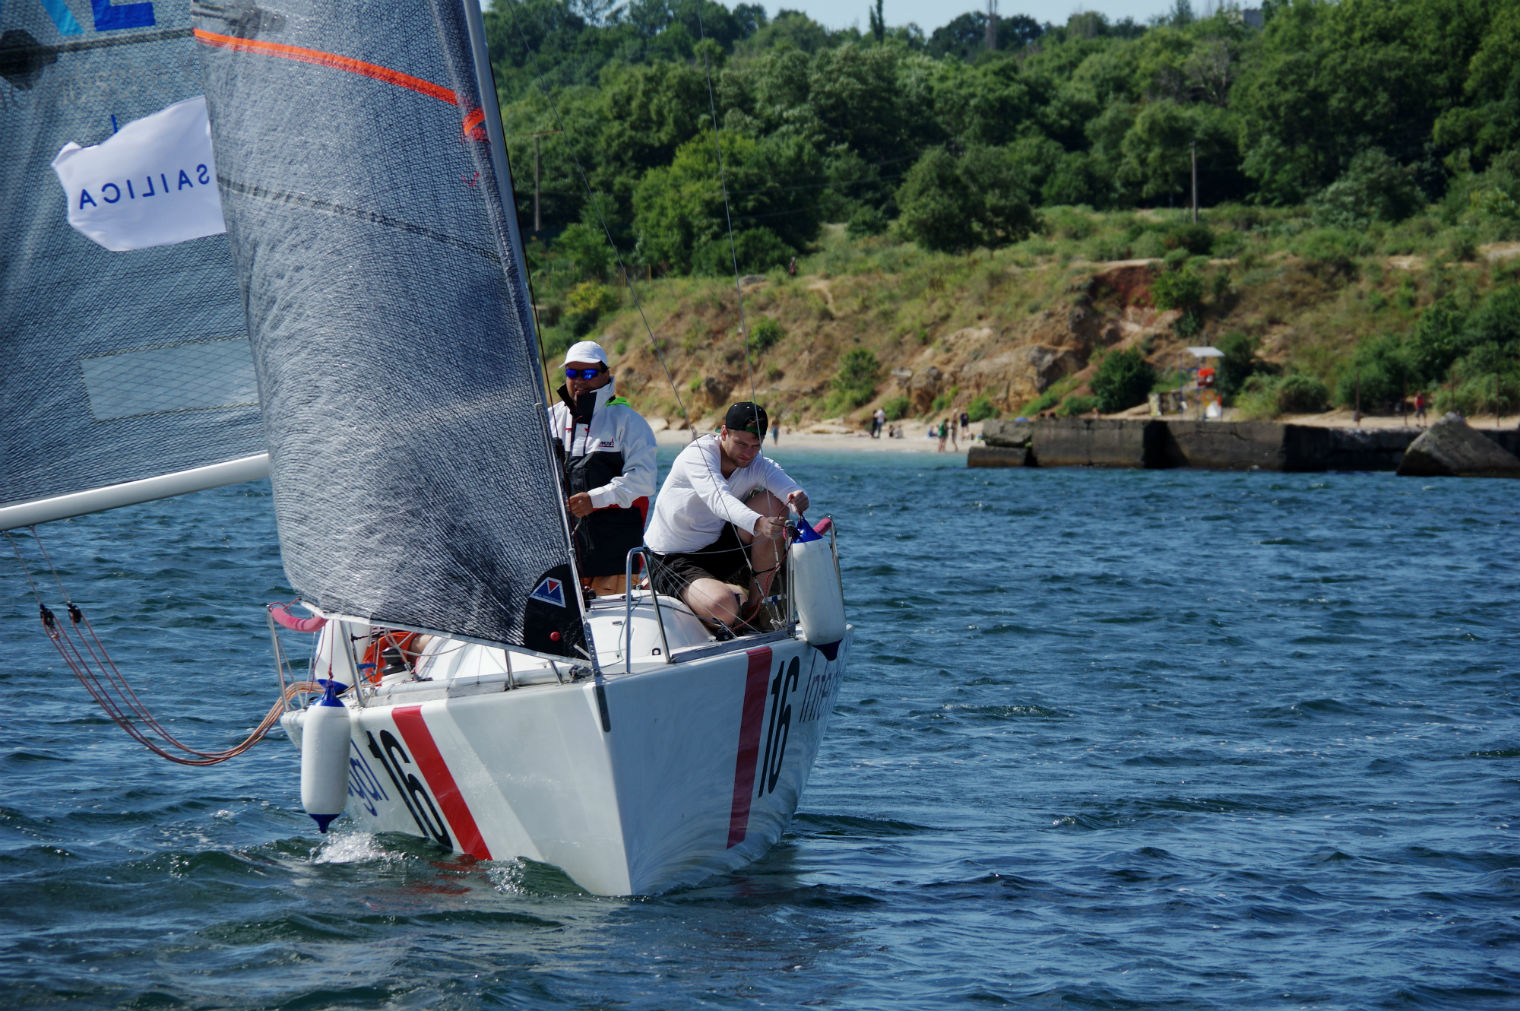 Sailica's regatta #1